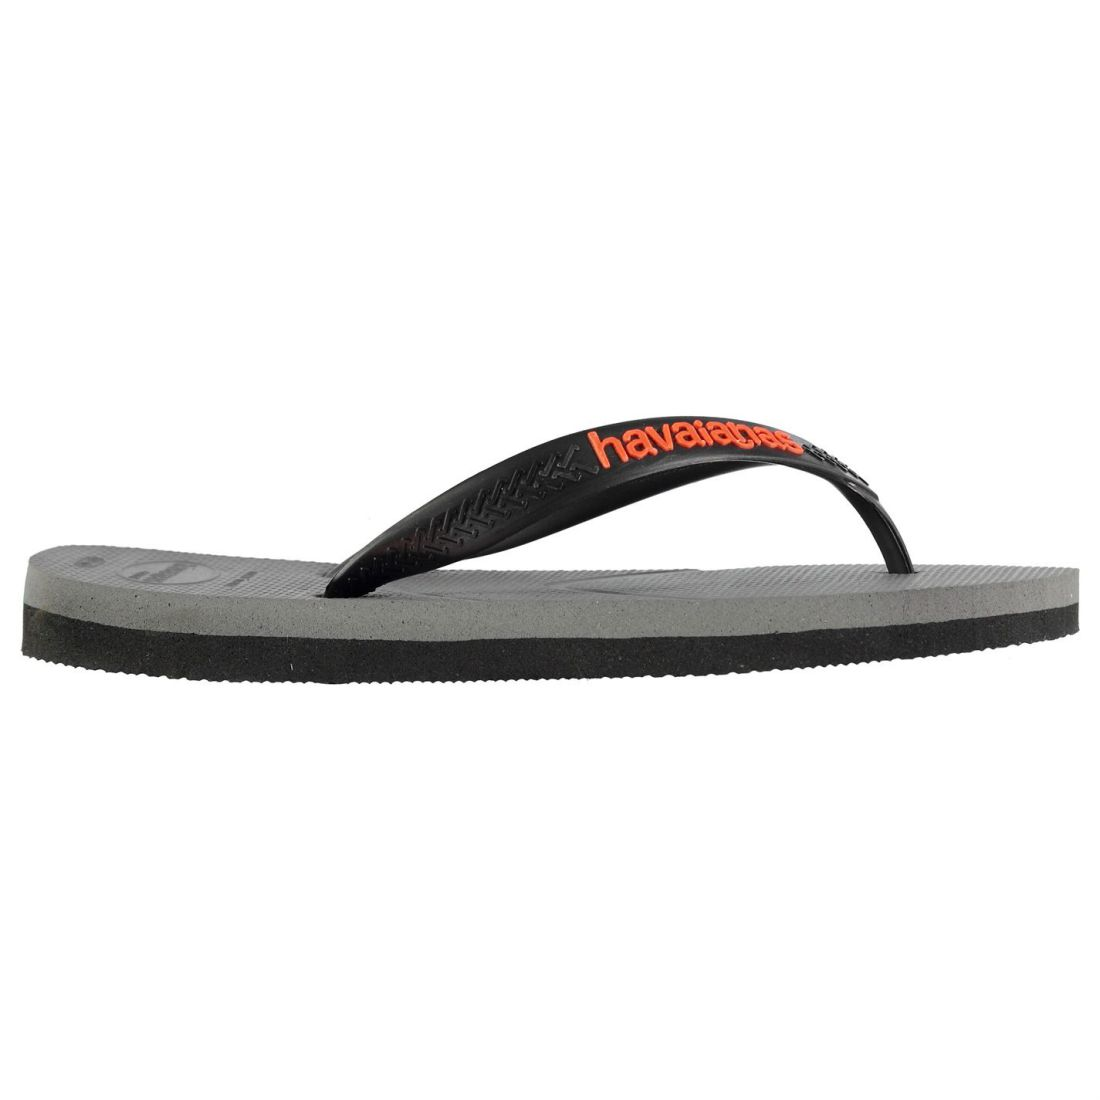 032bbed3b245b Havaianas Everyday Flip Flops Mens Gents Strap Comfortable Fit